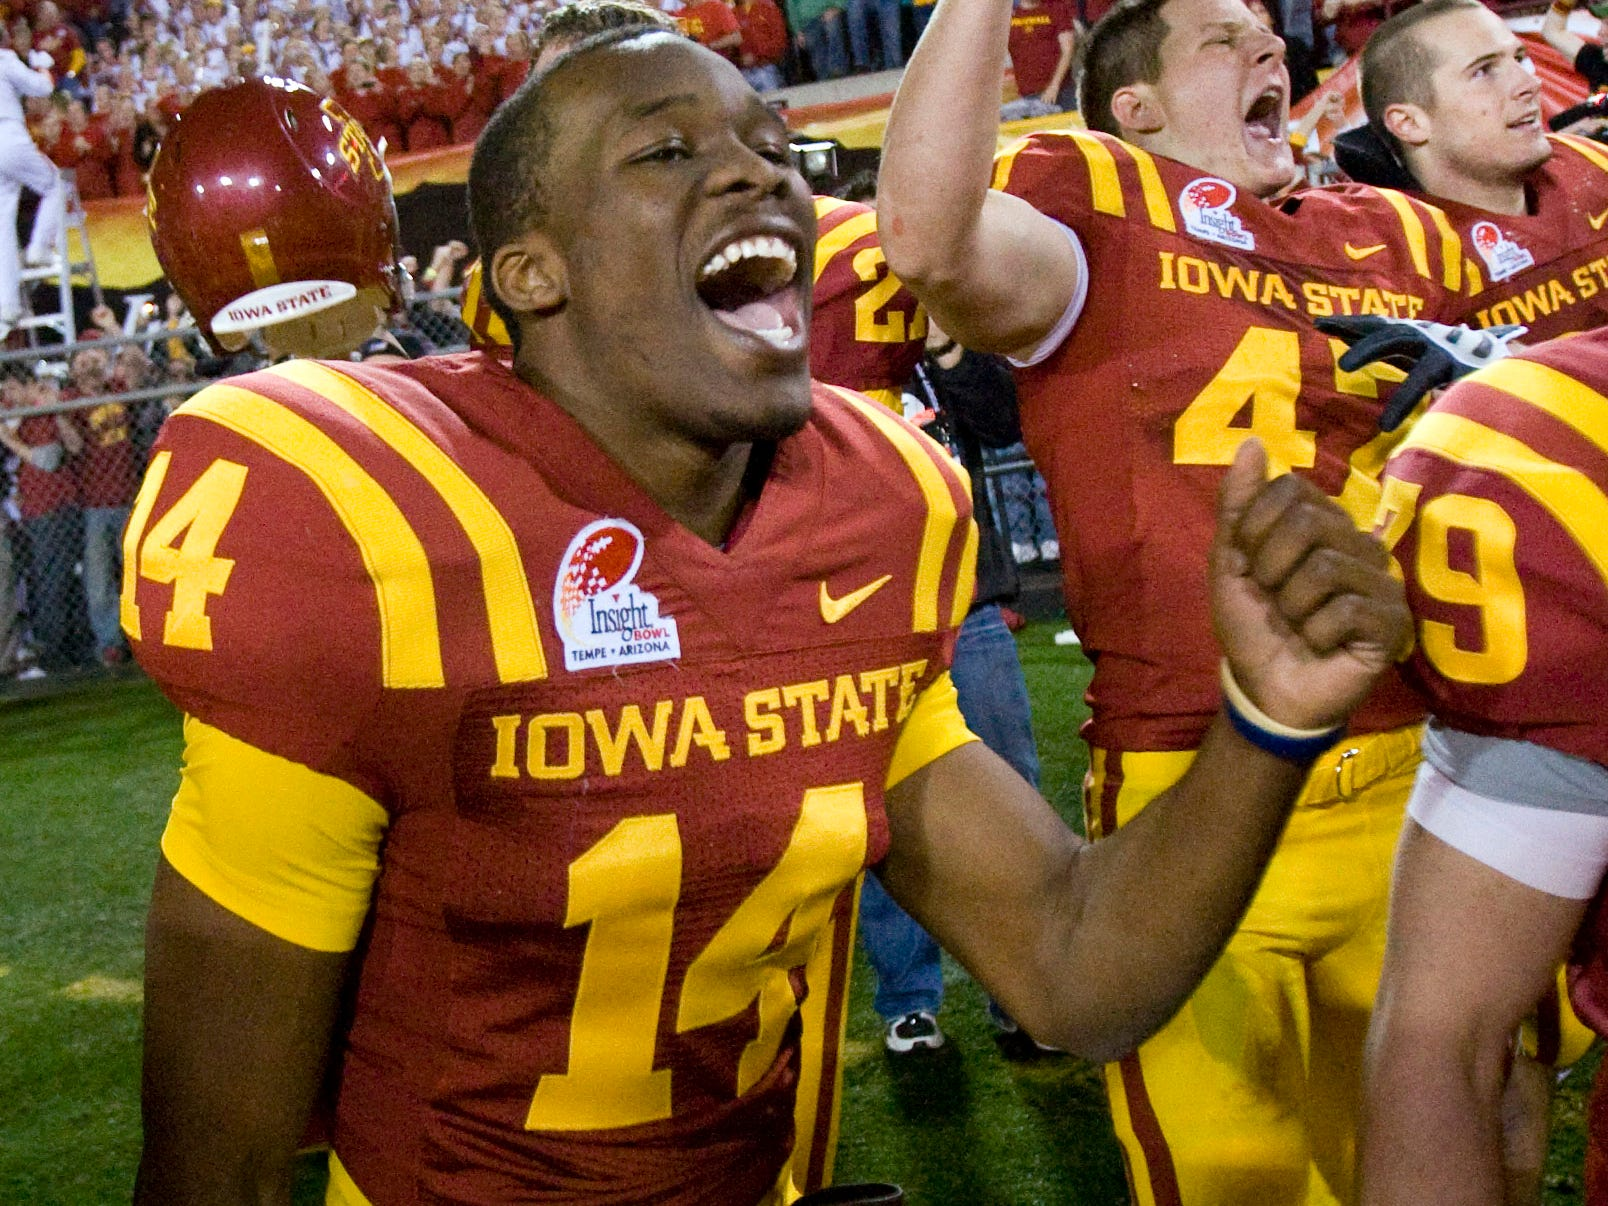 Bayside High grad Deon Broomfield played for Iowa State before landing on the Buffalo Bills' practice squad.